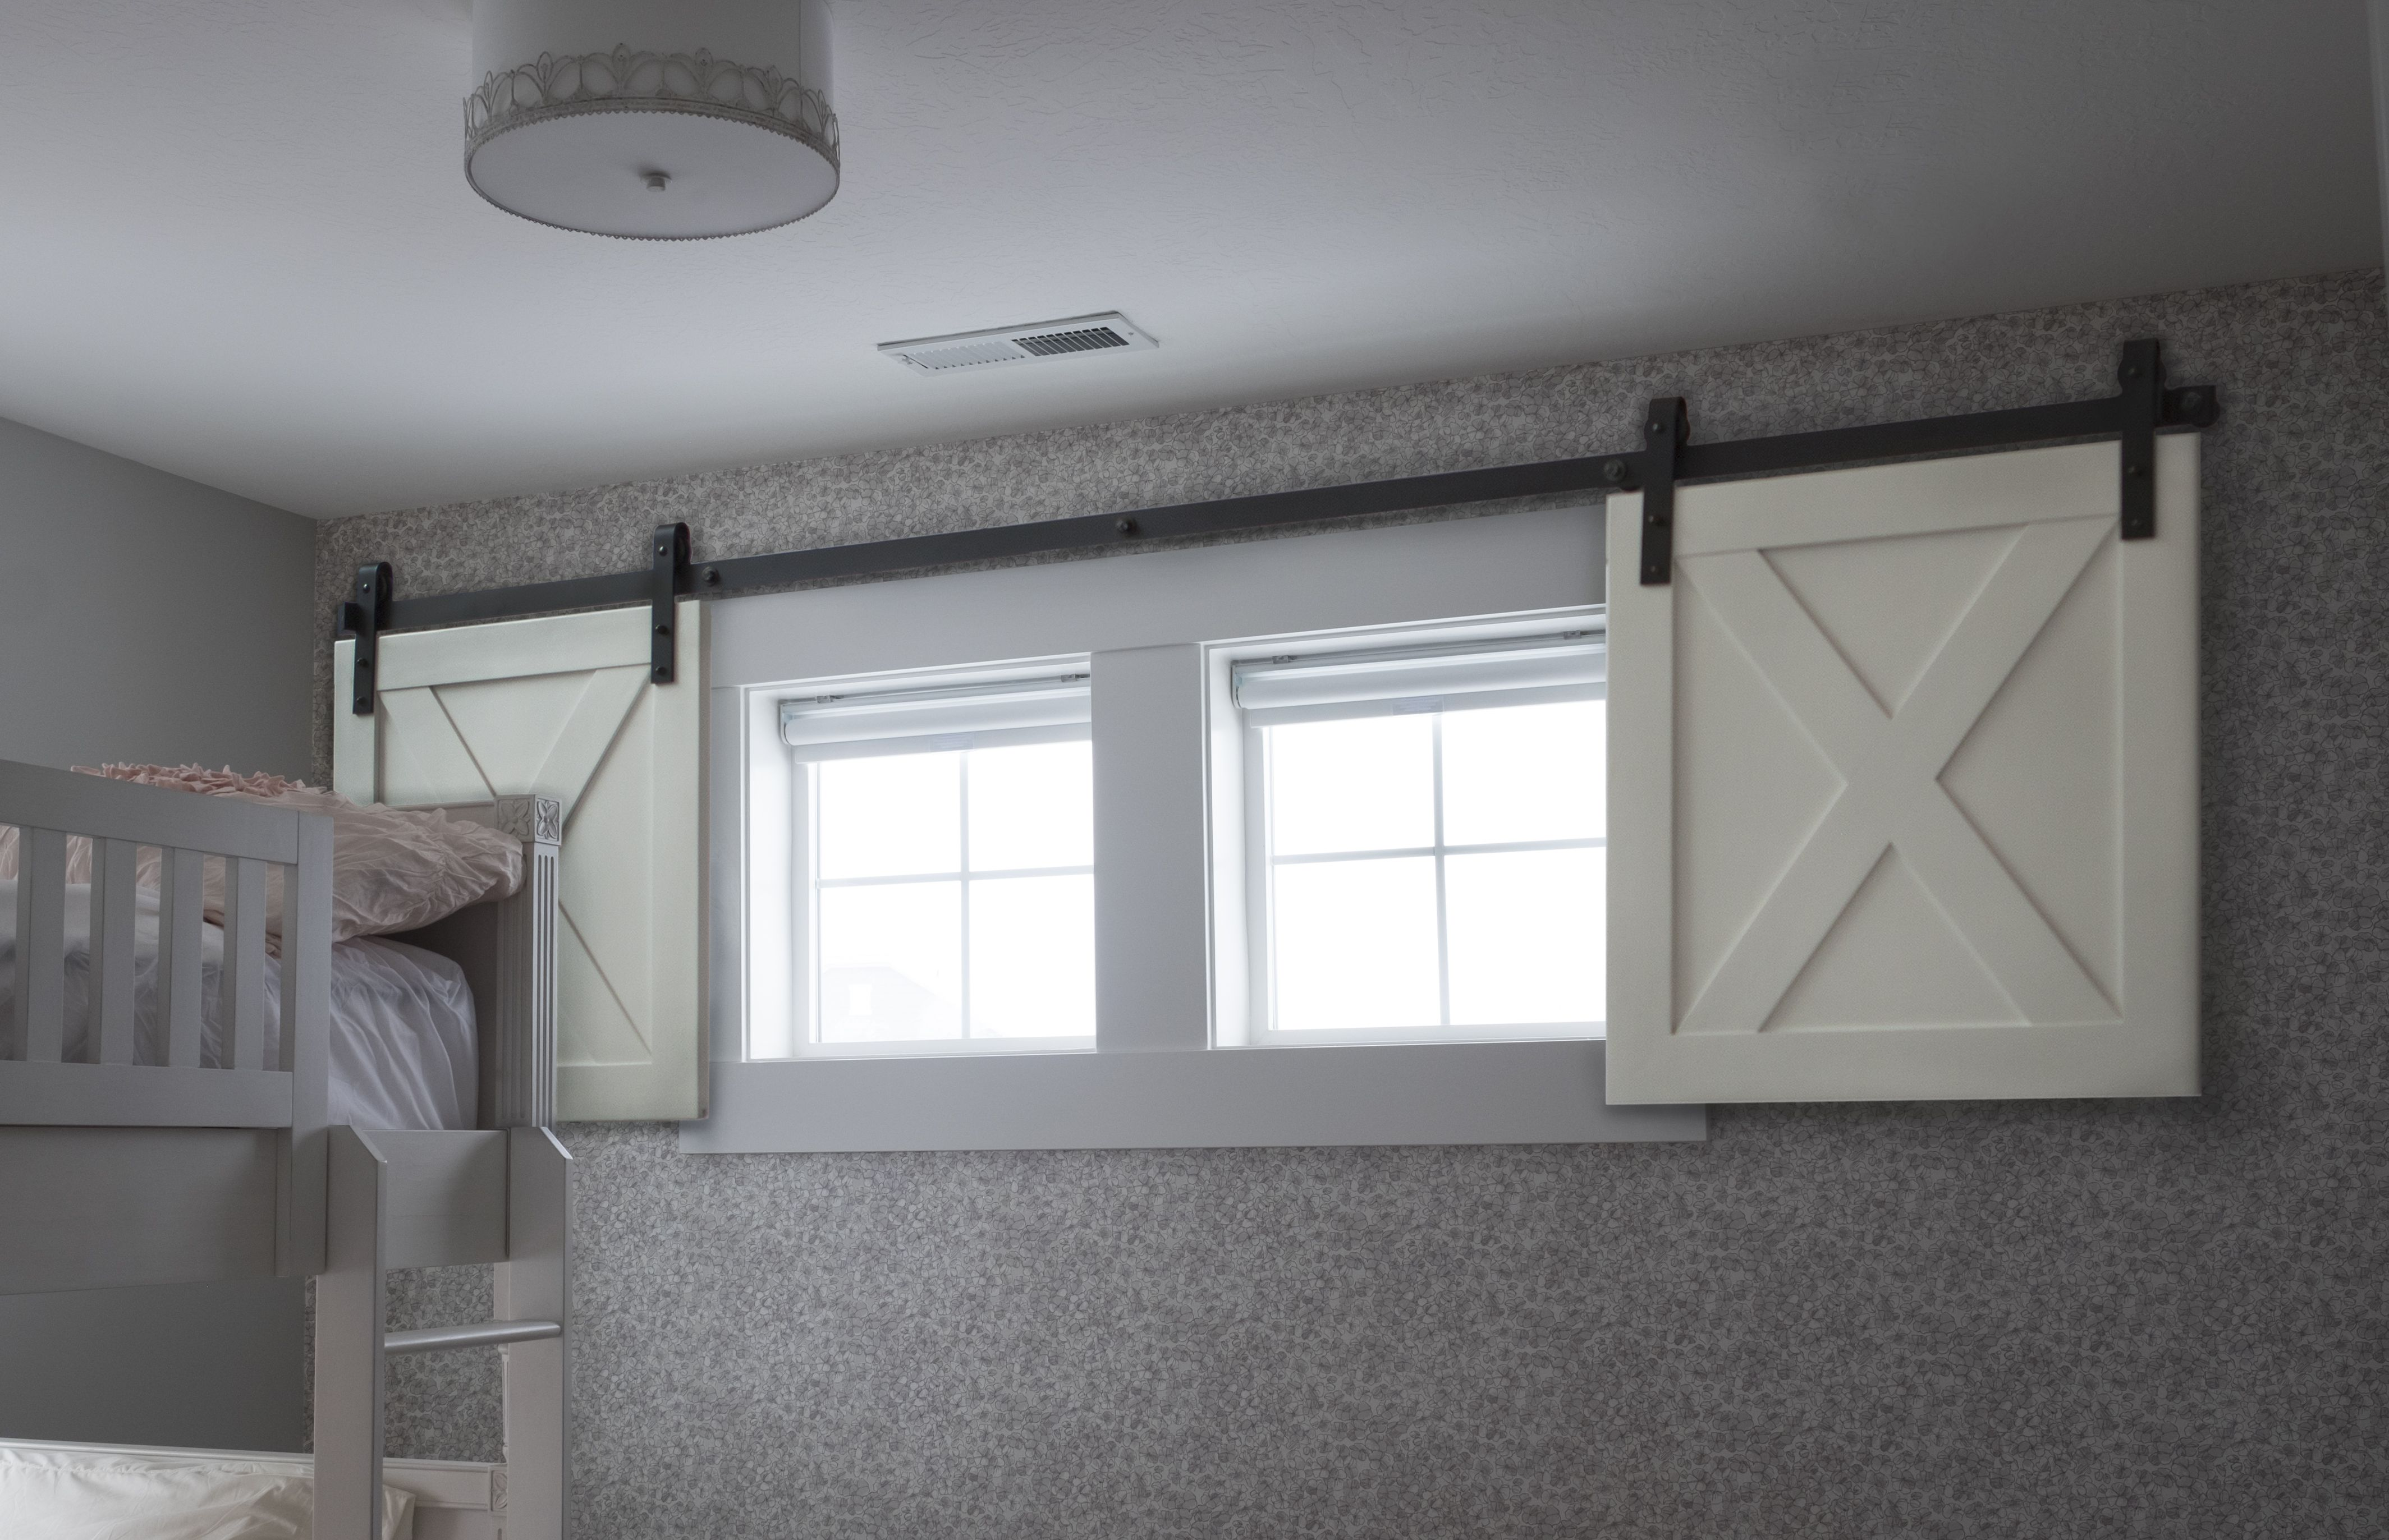 Mini barn door shutters perfect for small spaces decorating